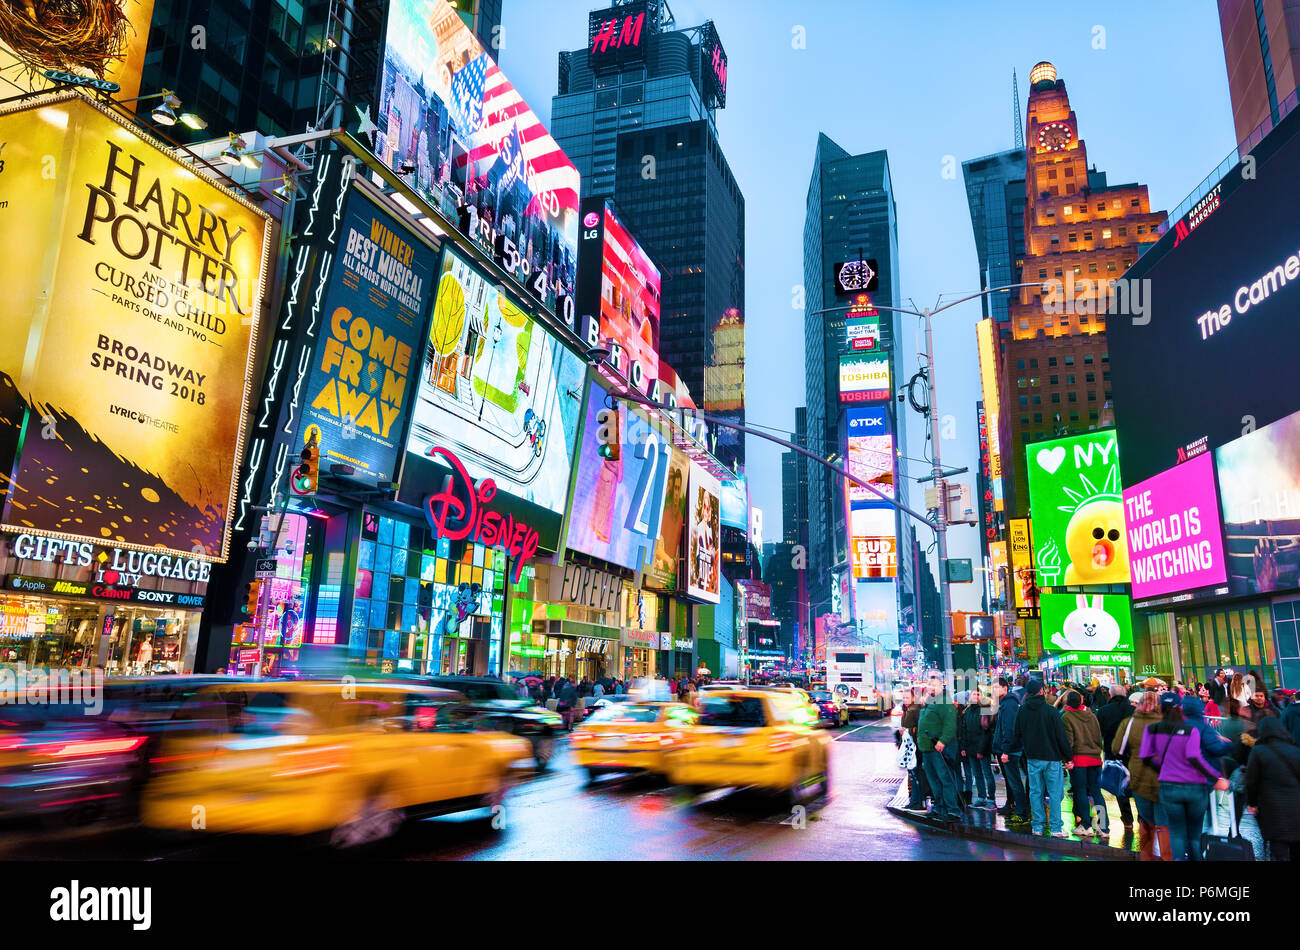 New York Times Square Lights Manhattan New York City - Stock Image